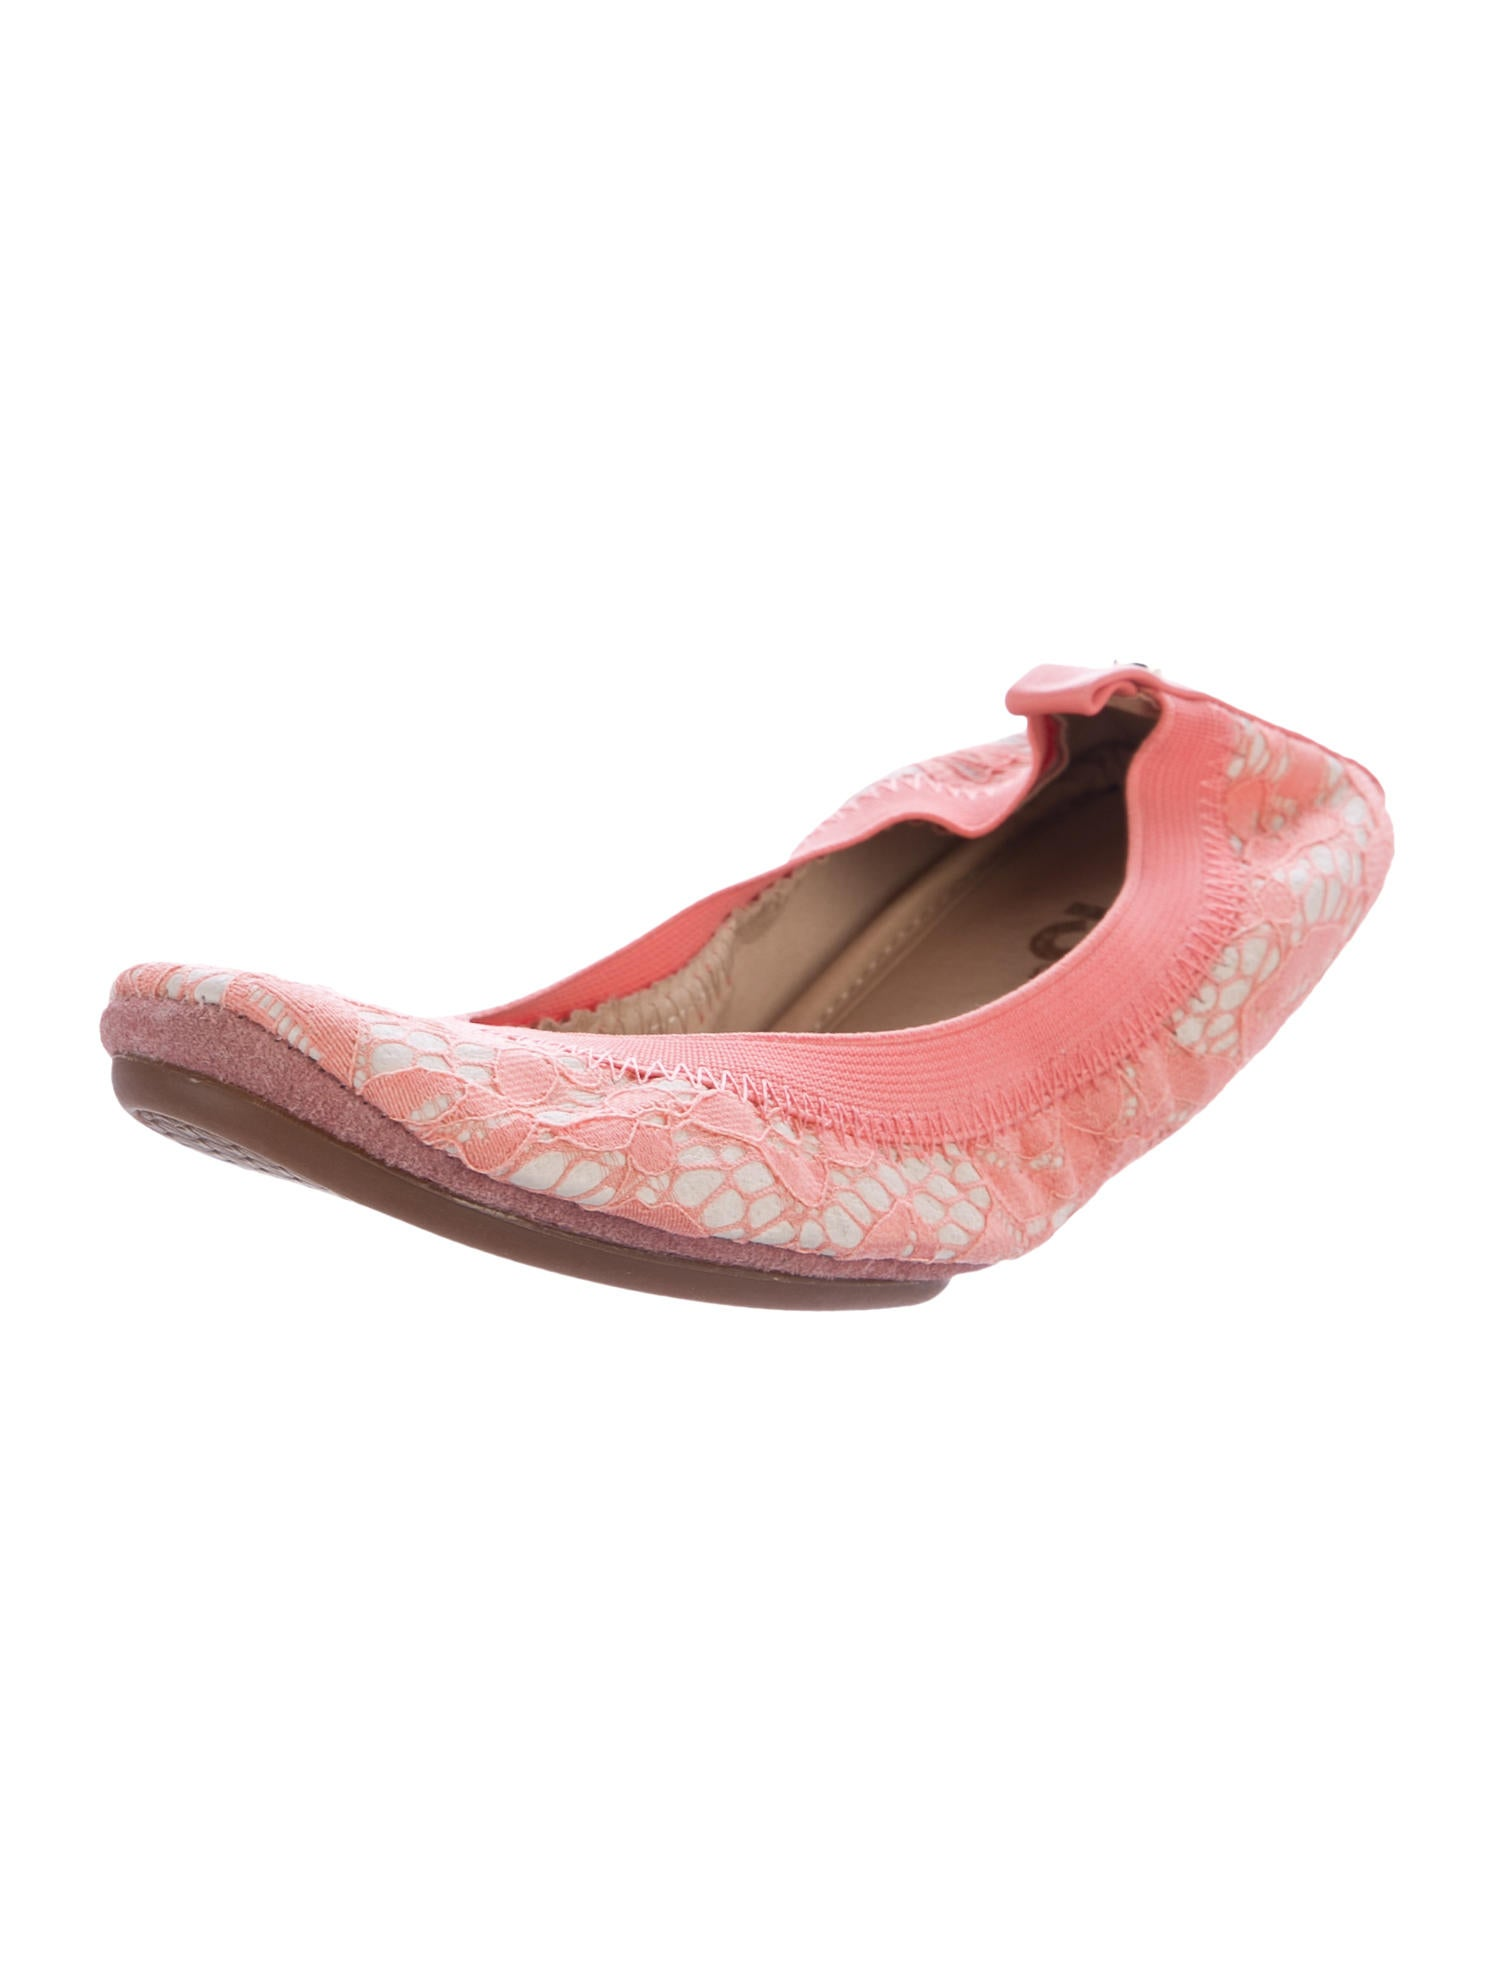 yosi samra lace travel flats w tags shoes wyosi20064